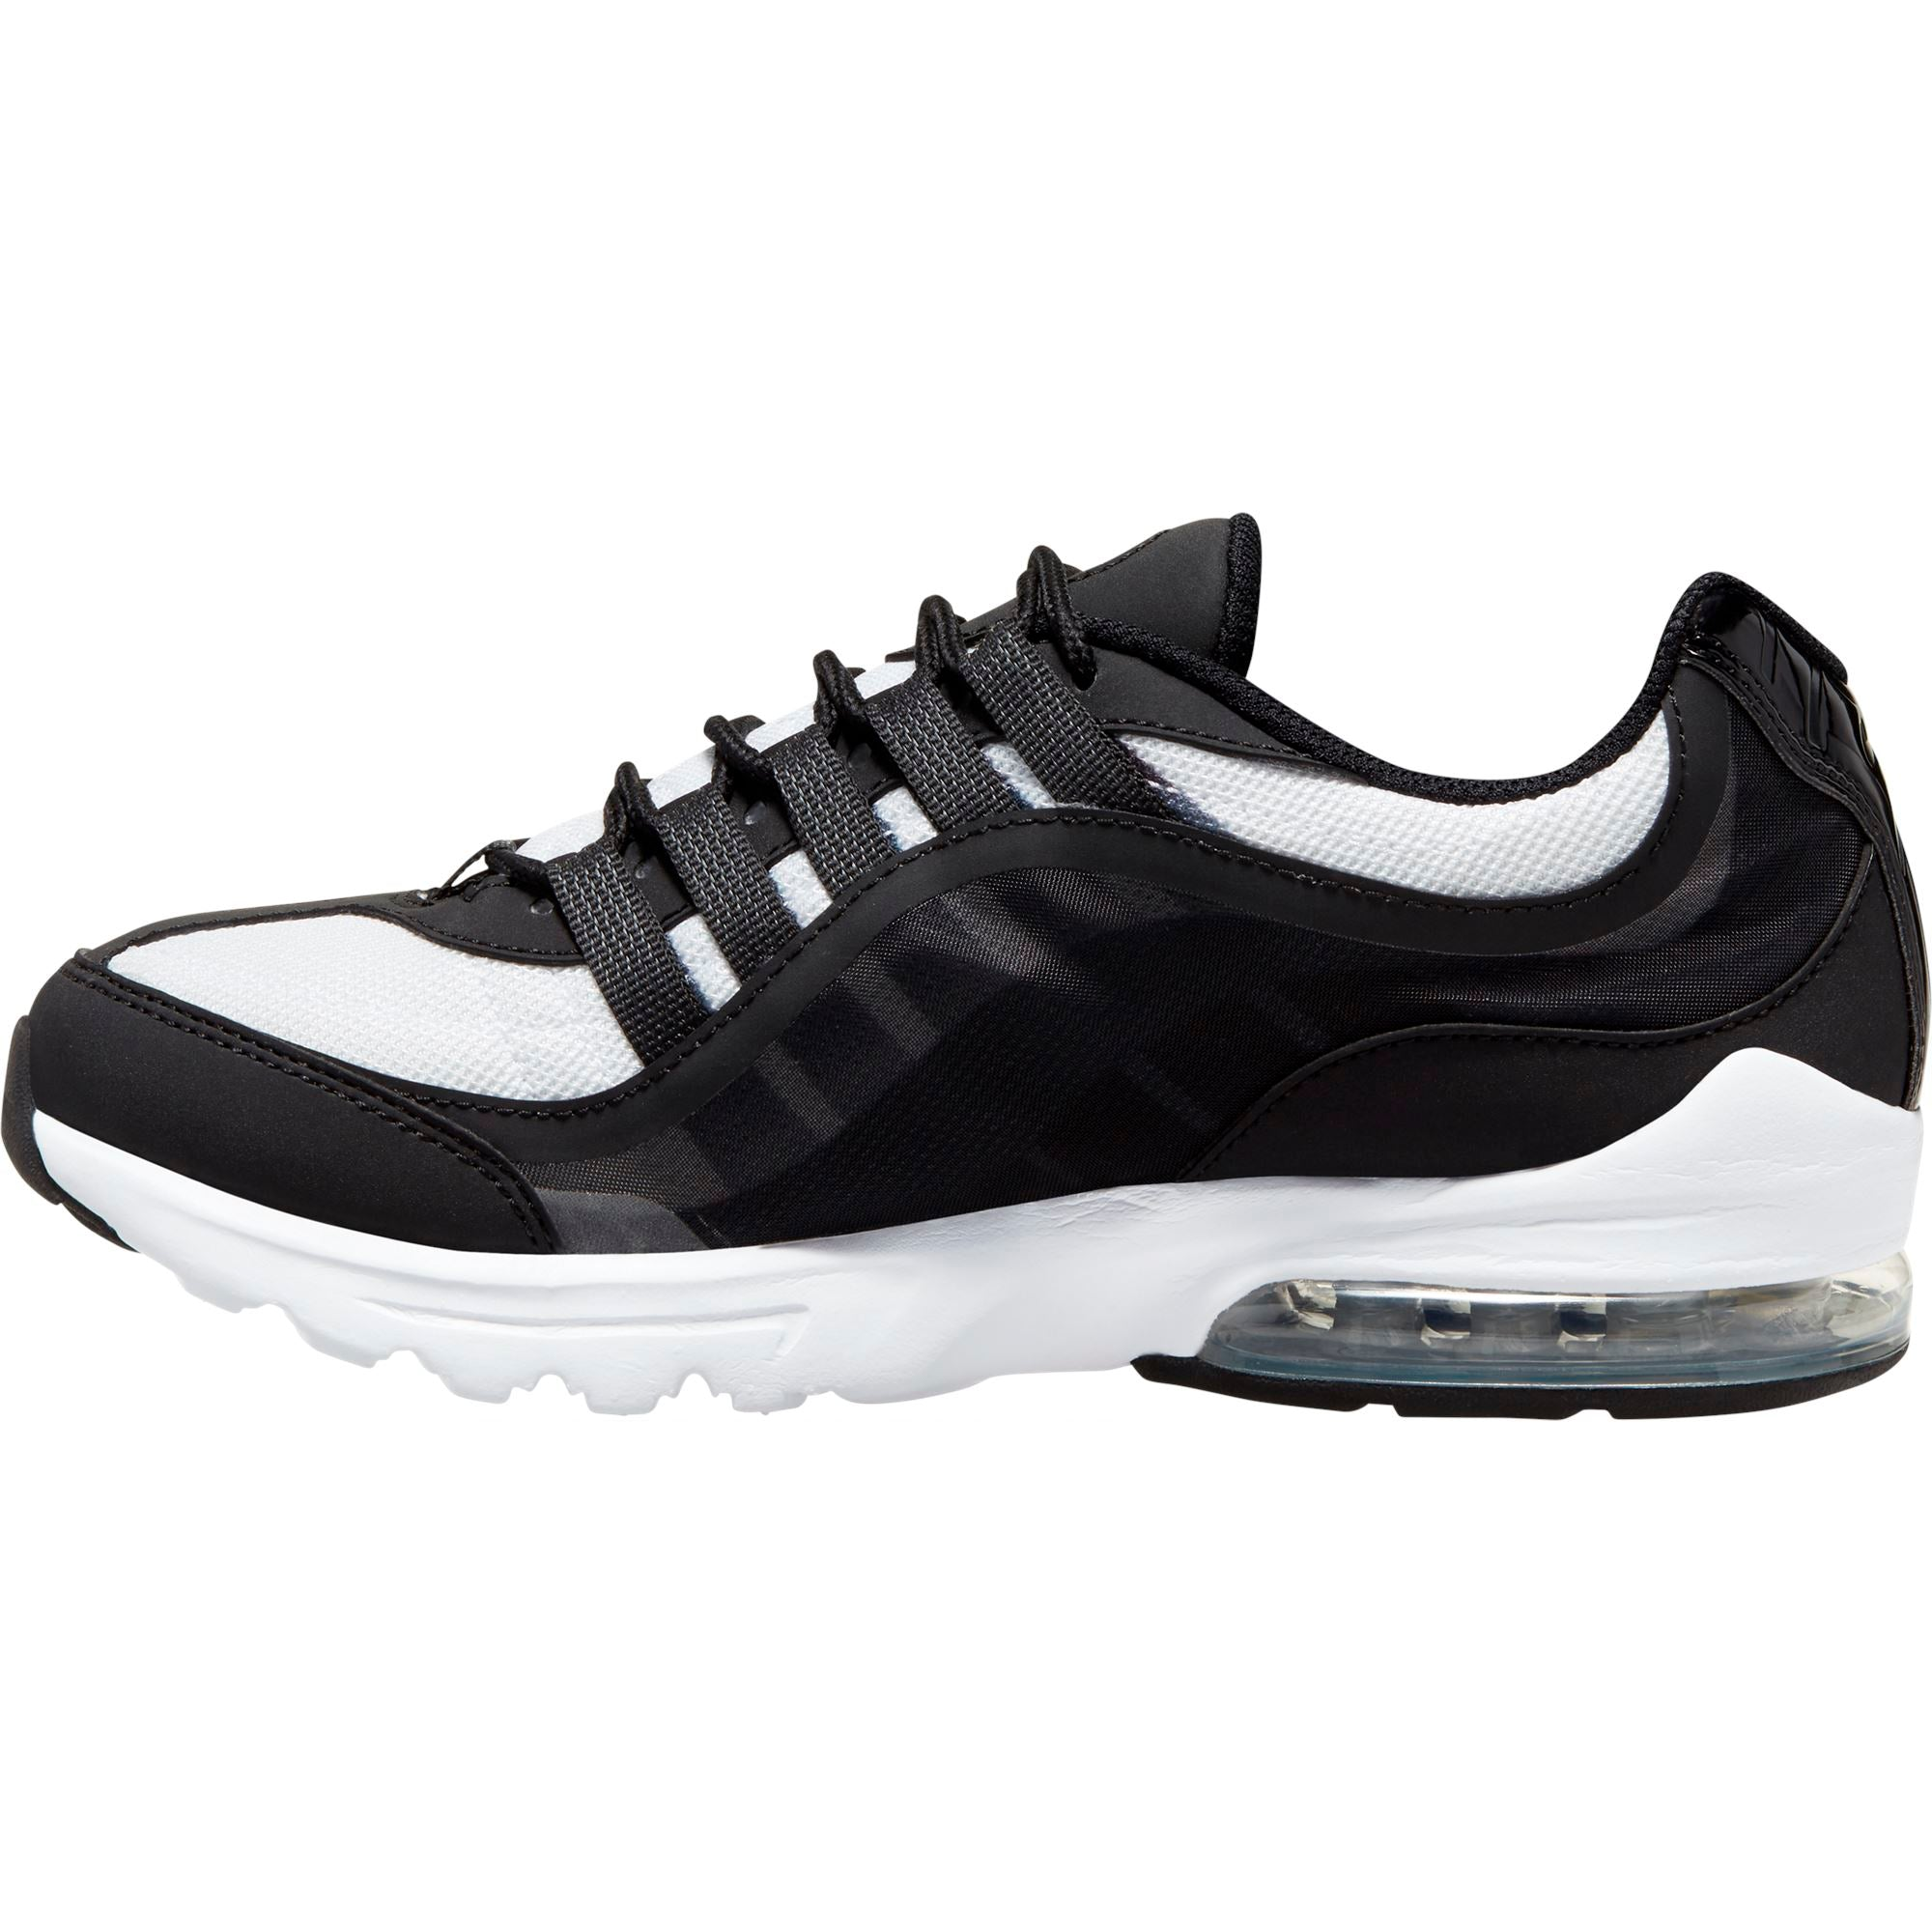 Nike Womens Air Max VG-R - Black/White-Black SP-Footwear-Womens Nike